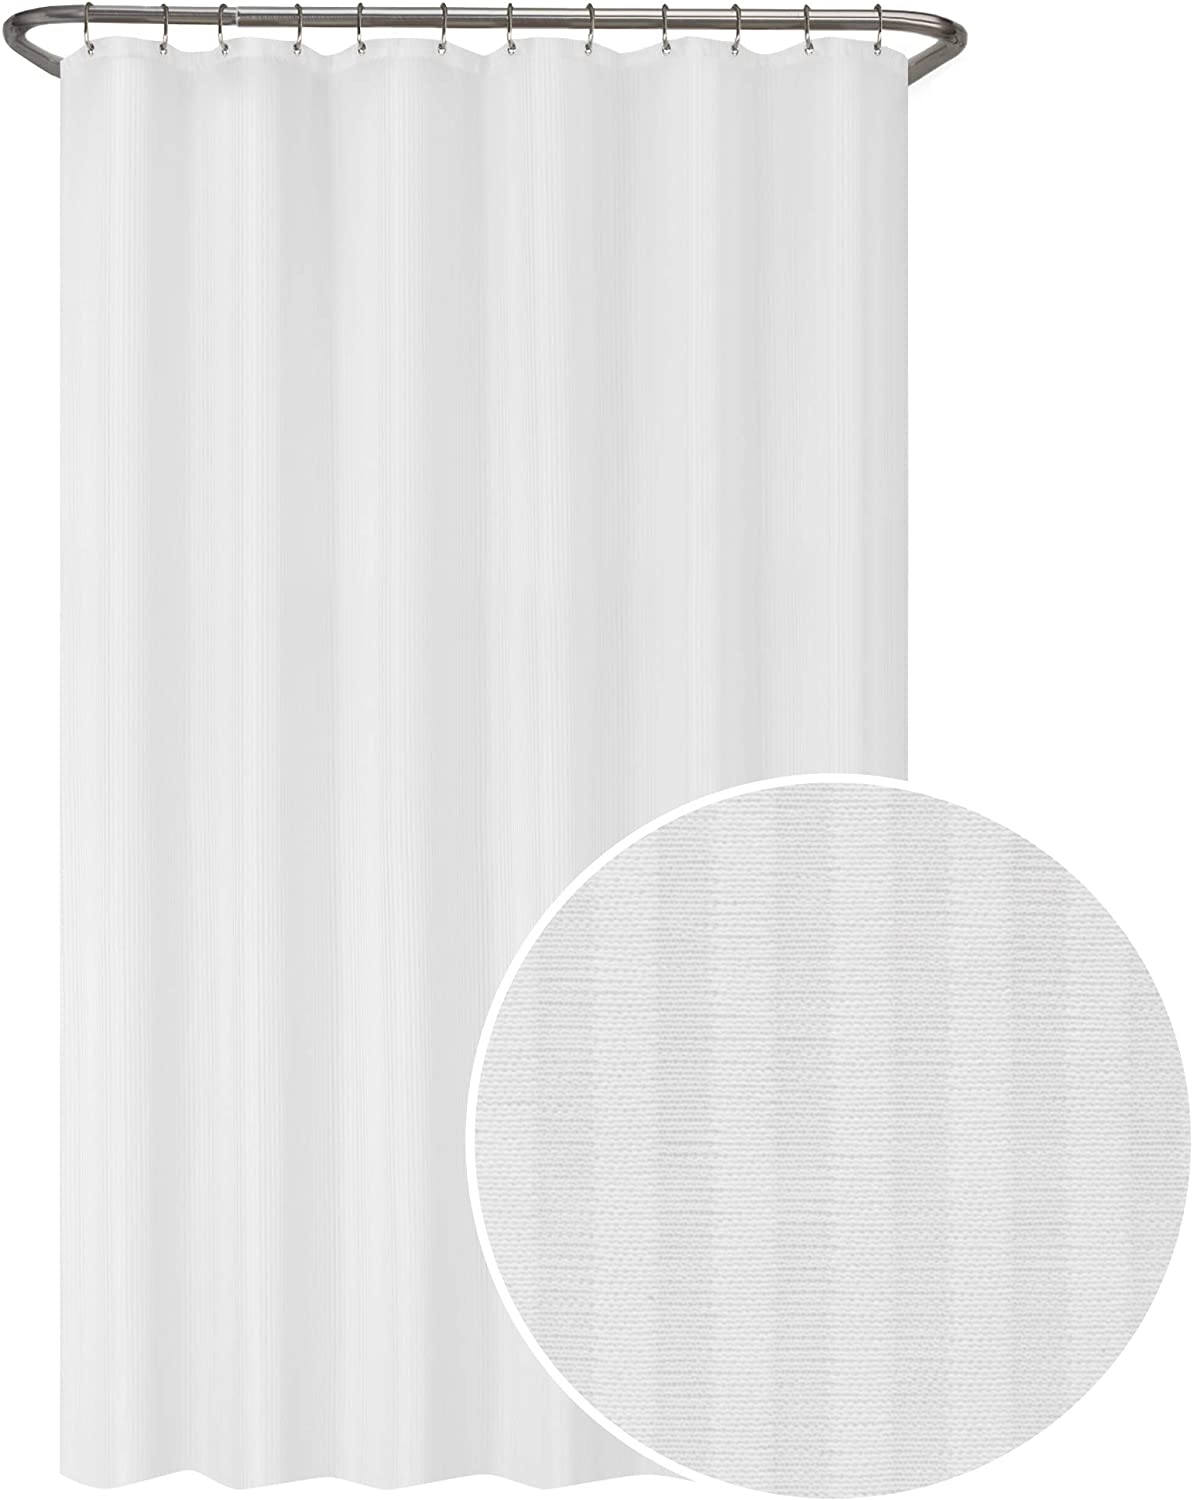 Zenna Home Striped Ultimate Waterproof Fabric Shower Curtain or Liner, 70 x 72 in, White